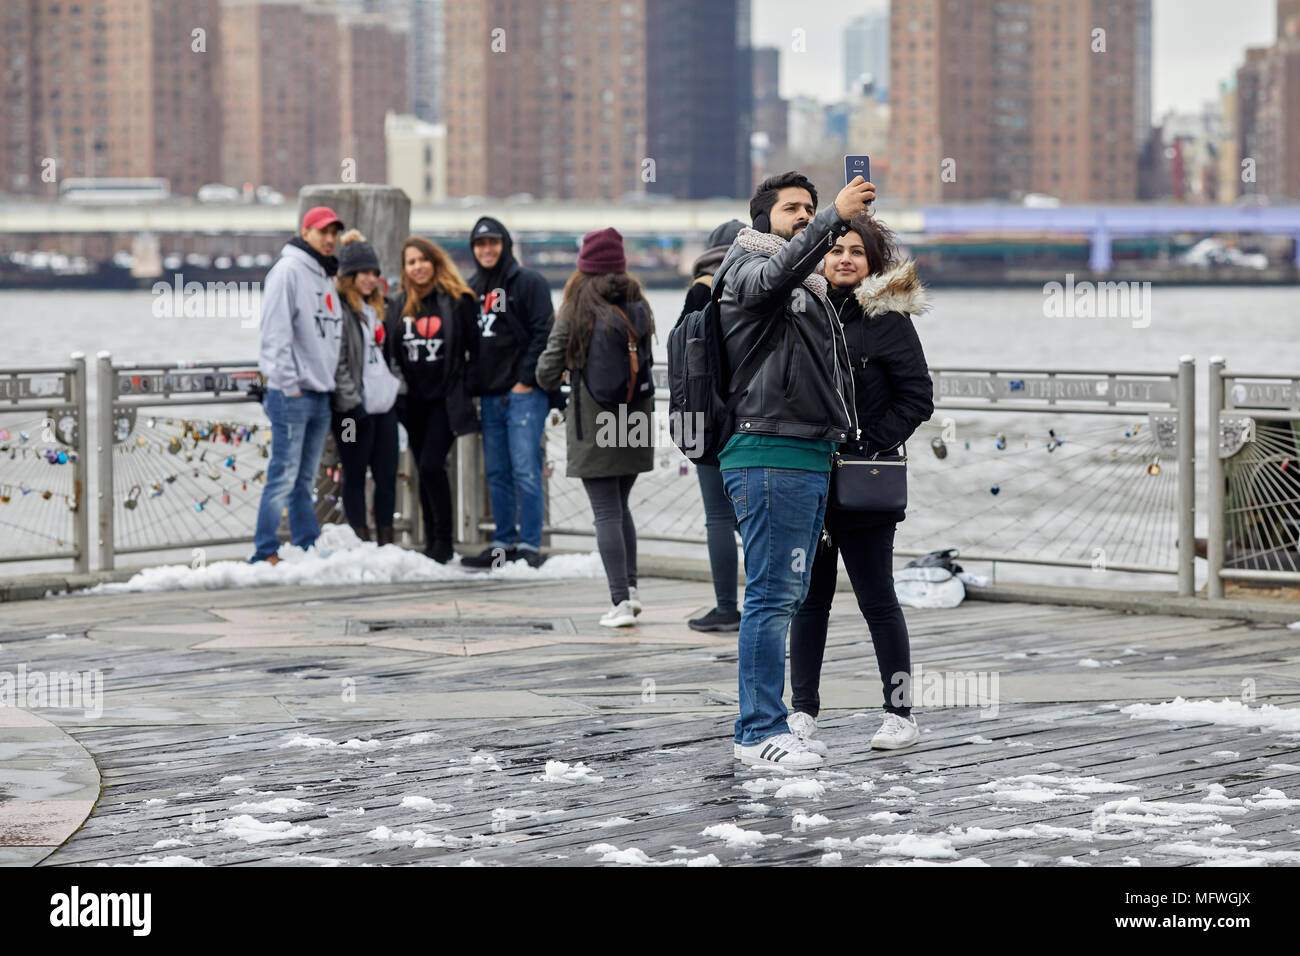 Brooklyn in New York City, tourists take pictures with landmark view of skyline - Stock Image